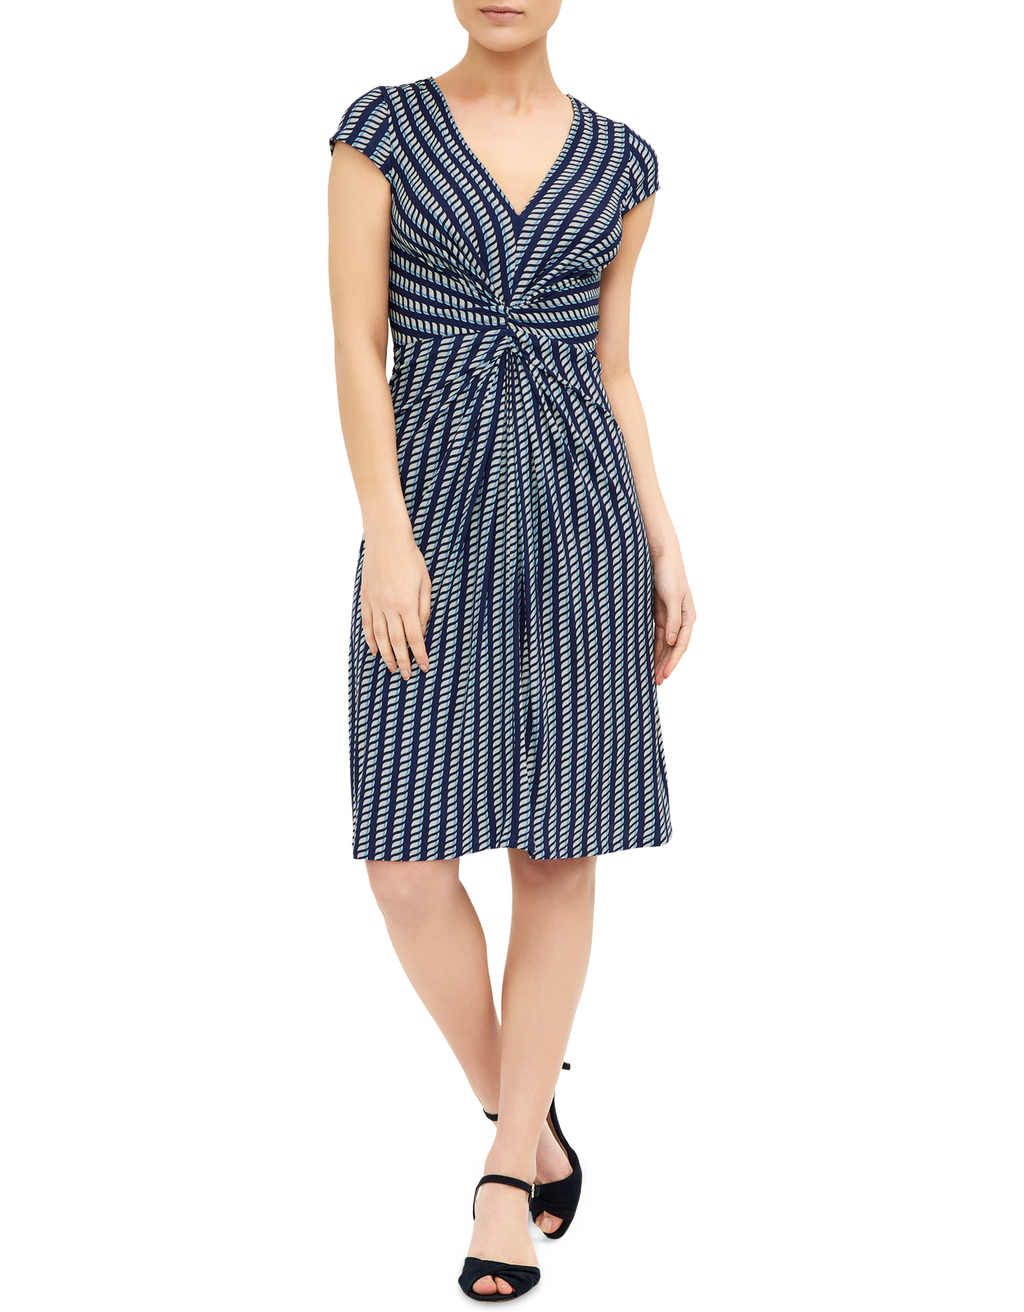 Gabriella Dress - style: shift; neckline: v-neck; sleeve style: capped; pattern: striped; predominant colour: pale blue; secondary colour: navy; occasions: evening; length: on the knee; fit: body skimming; fibres: viscose/rayon - 100%; sleeve length: short sleeve; pattern type: fabric; texture group: jersey - stretchy/drapey; multicoloured: multicoloured; season: s/s 2016; wardrobe: event